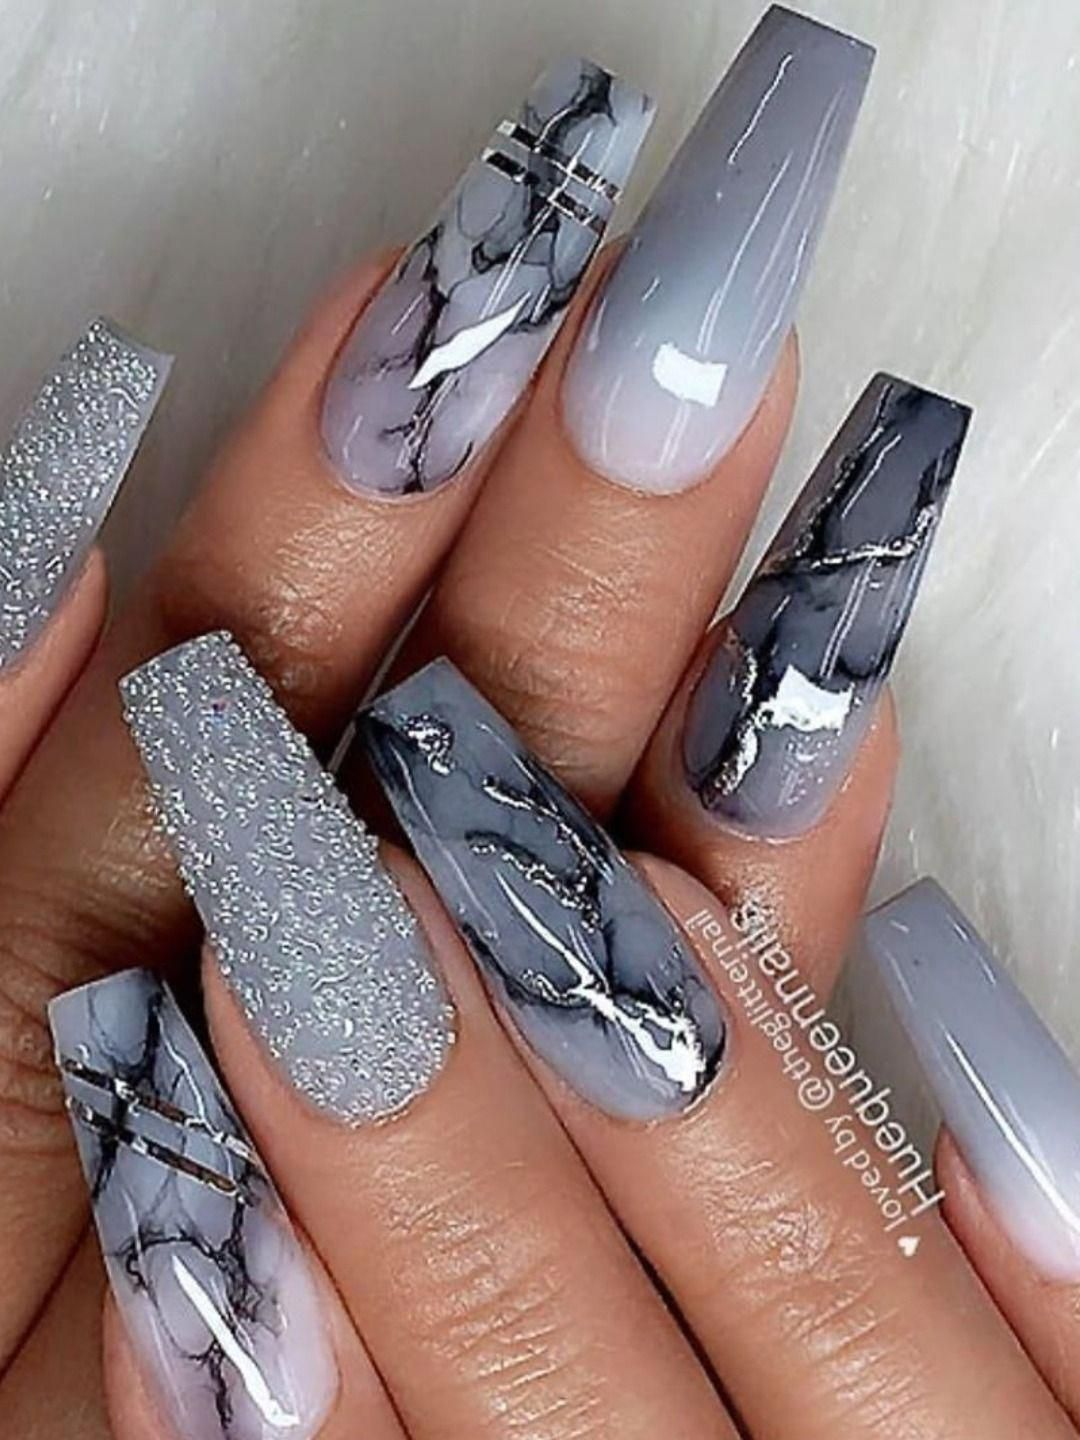 Amazing Grey Coffin Shaped Nails With Marble Glitter And Ombre Grey Nails For Inspiration Graynails Coff In 2020 Coffin Shape Nails Ombre Acrylic Nails Swag Nails